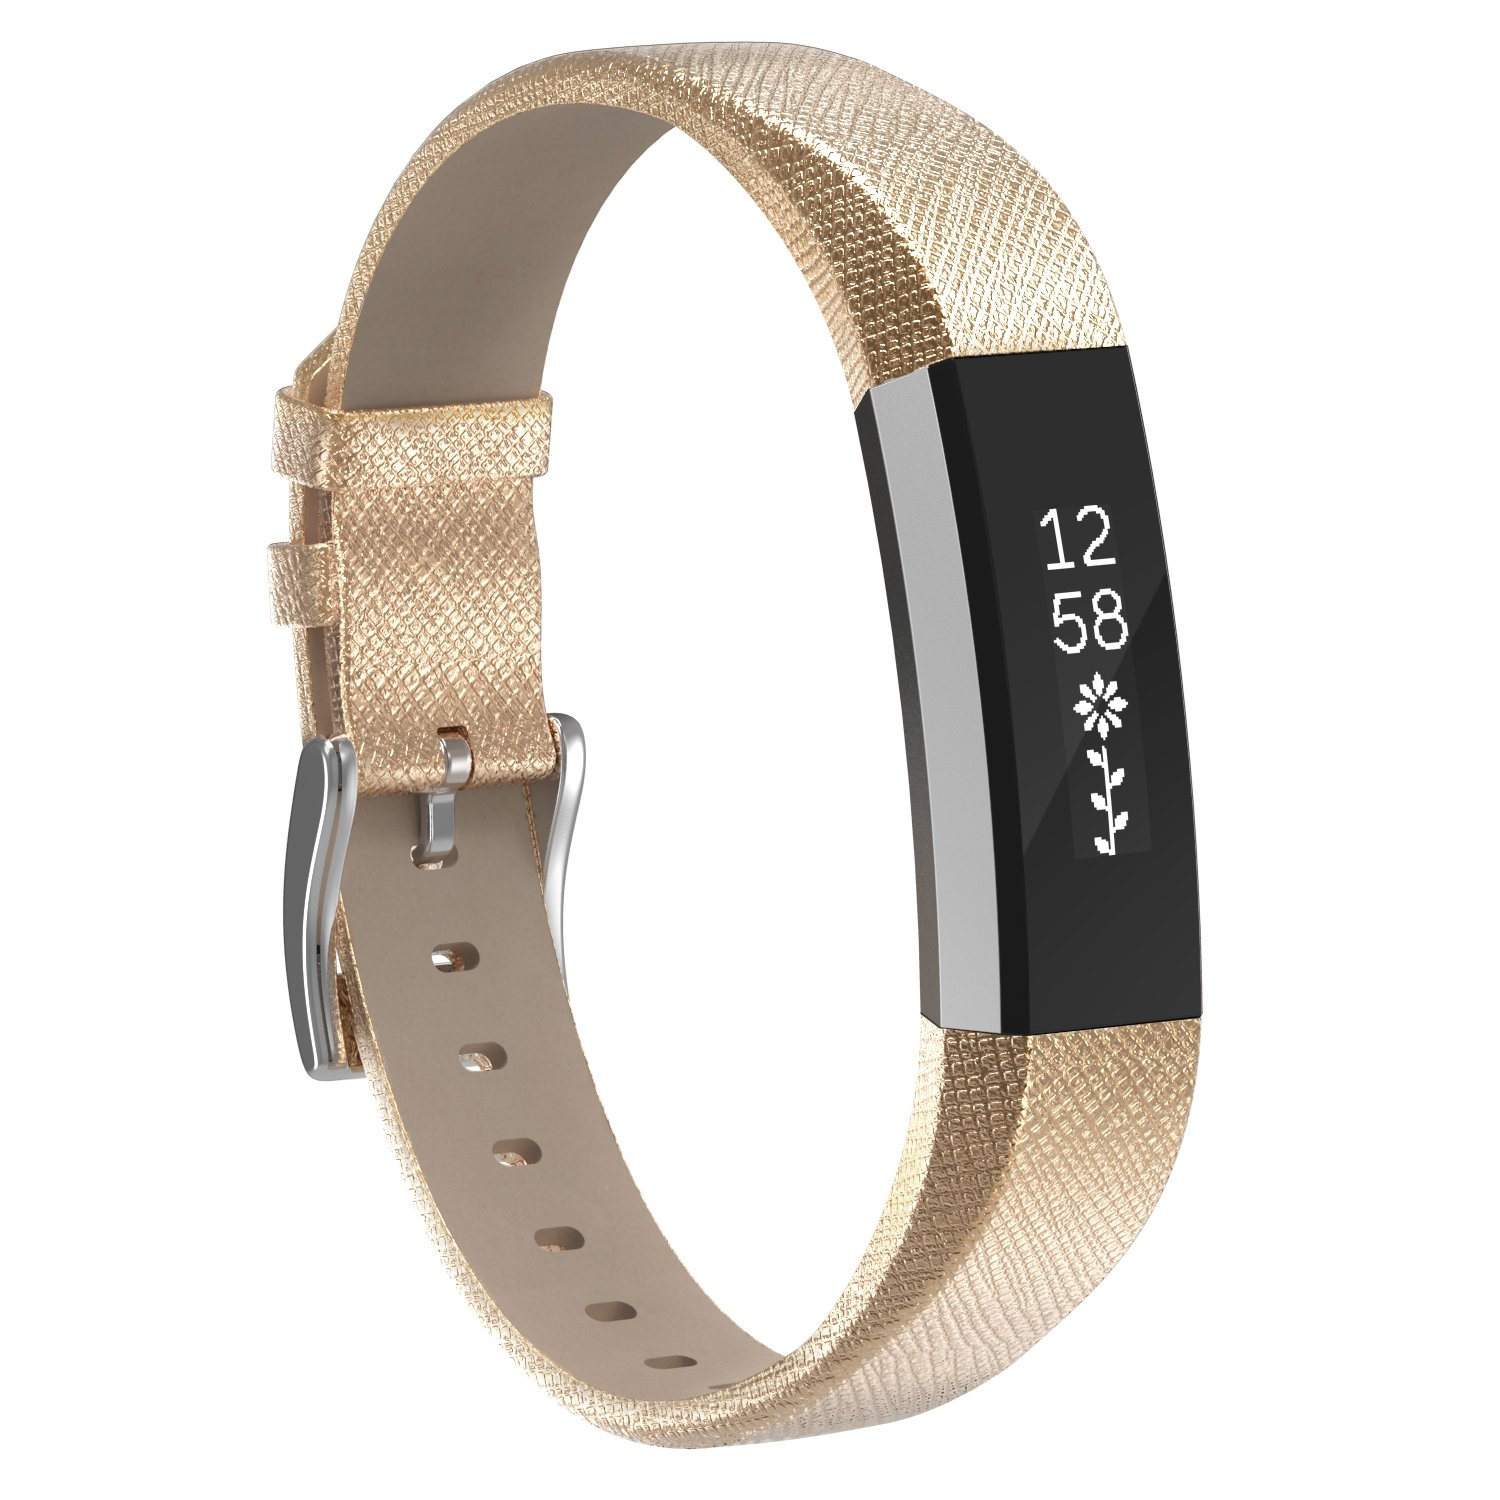 Henoda Replacemnt Leather Bands Compatible with Fitbit Alta/Fitbit Alta HR, Gold Classic Genuine Leather Wristband, Small Large, No Tracker